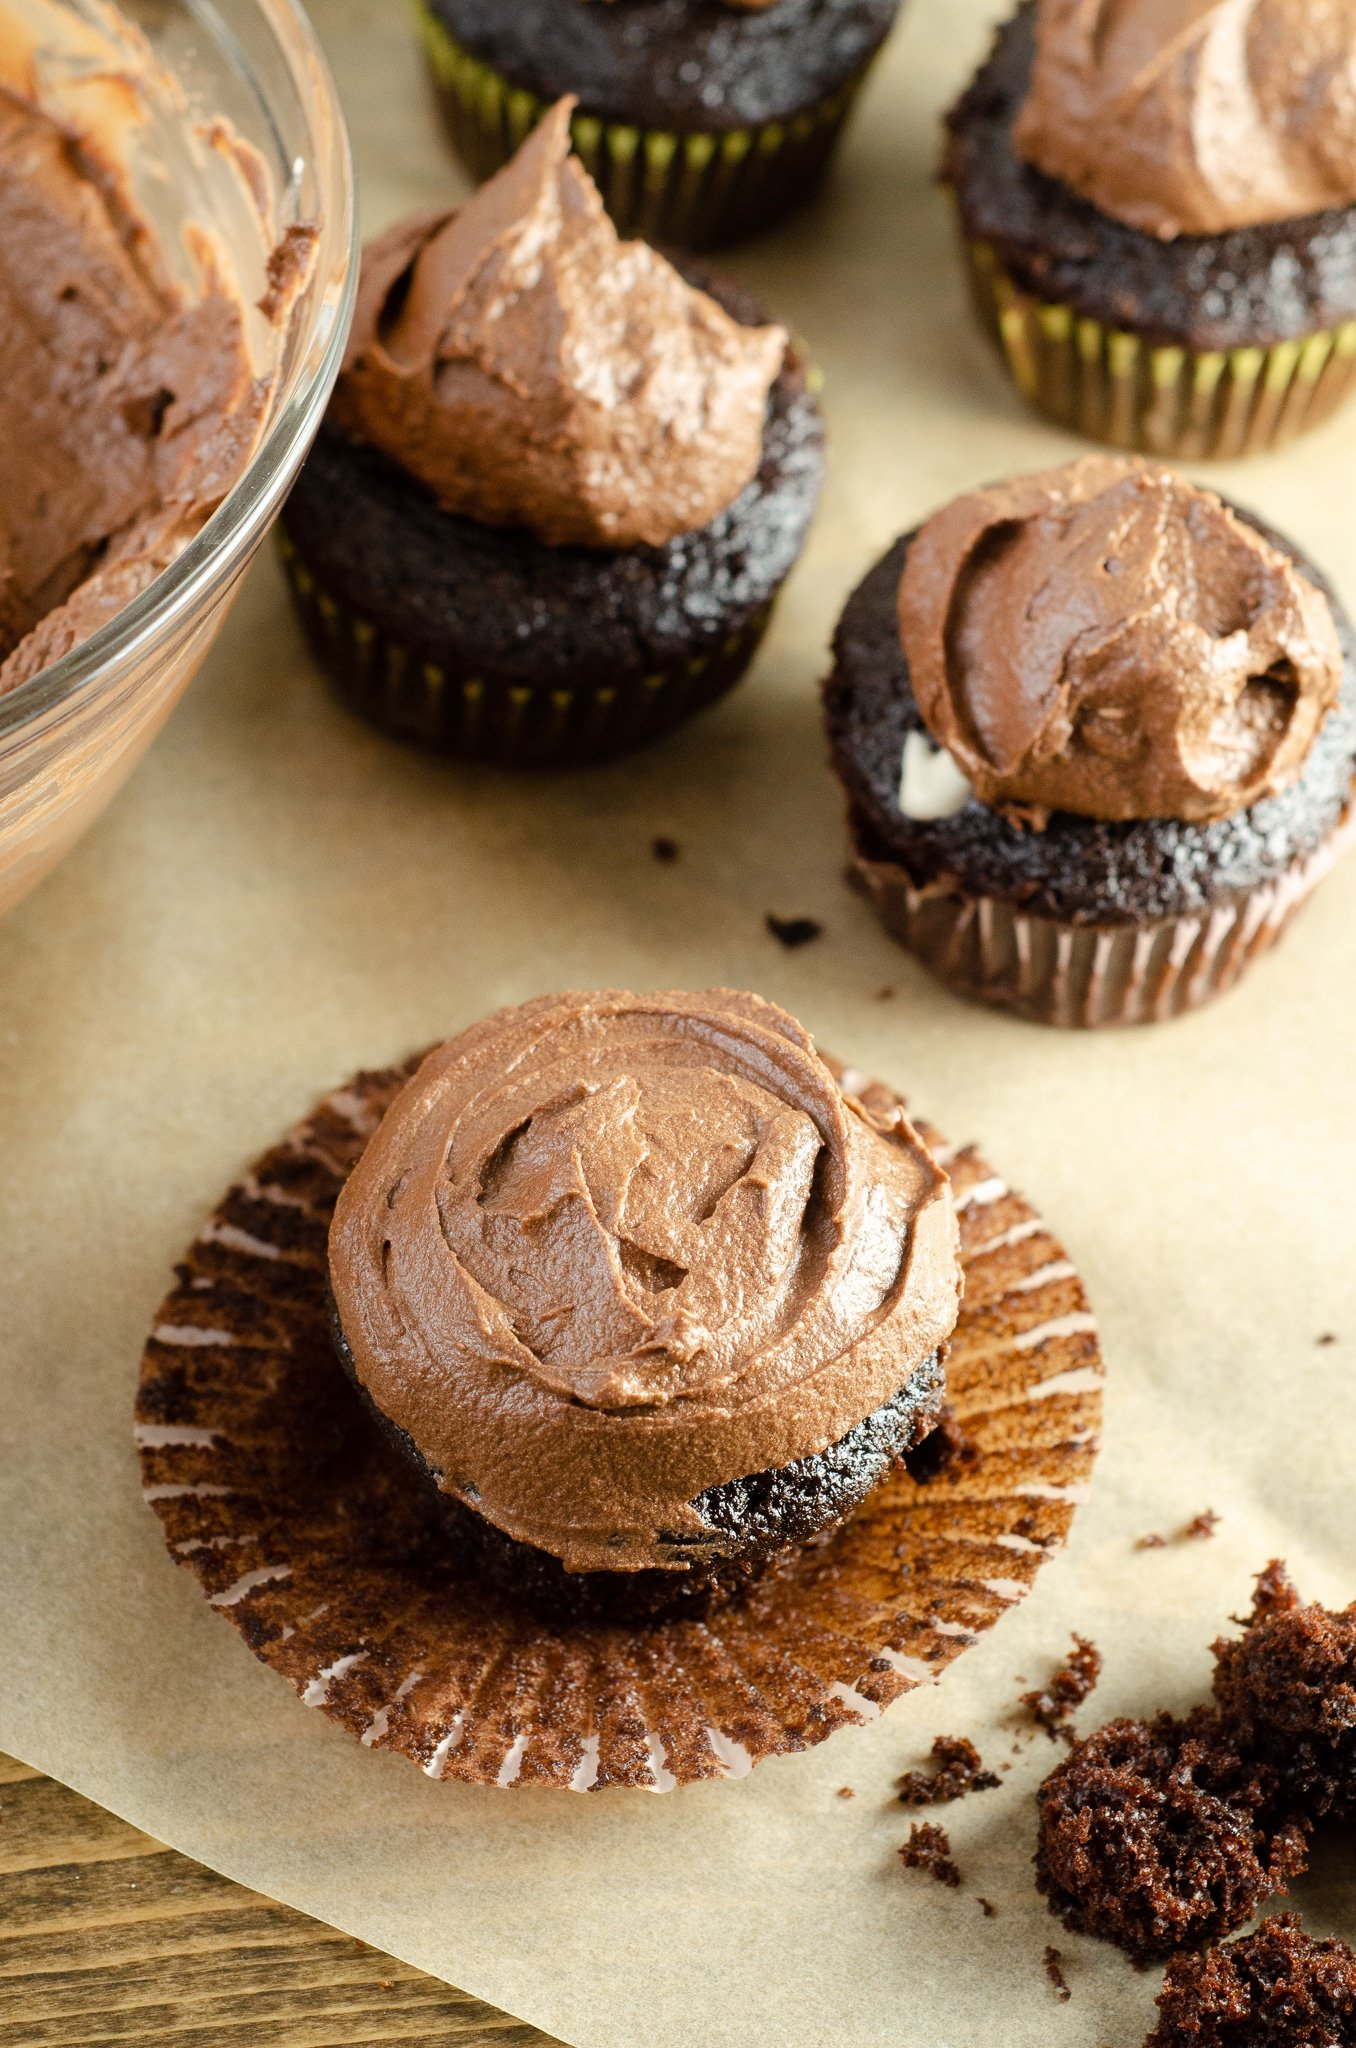 Chocolate Cupcakes with Chocolate Buttercream Frosting - Marshmallow Creme Filling. Sink your teeth into a childhood favorite cupcake that is as easy to bake as it is to eat. My Chocolate cupcakes with Chocolate Buttercream frosting and marshmallow creme filling will make the kid in you cheer.